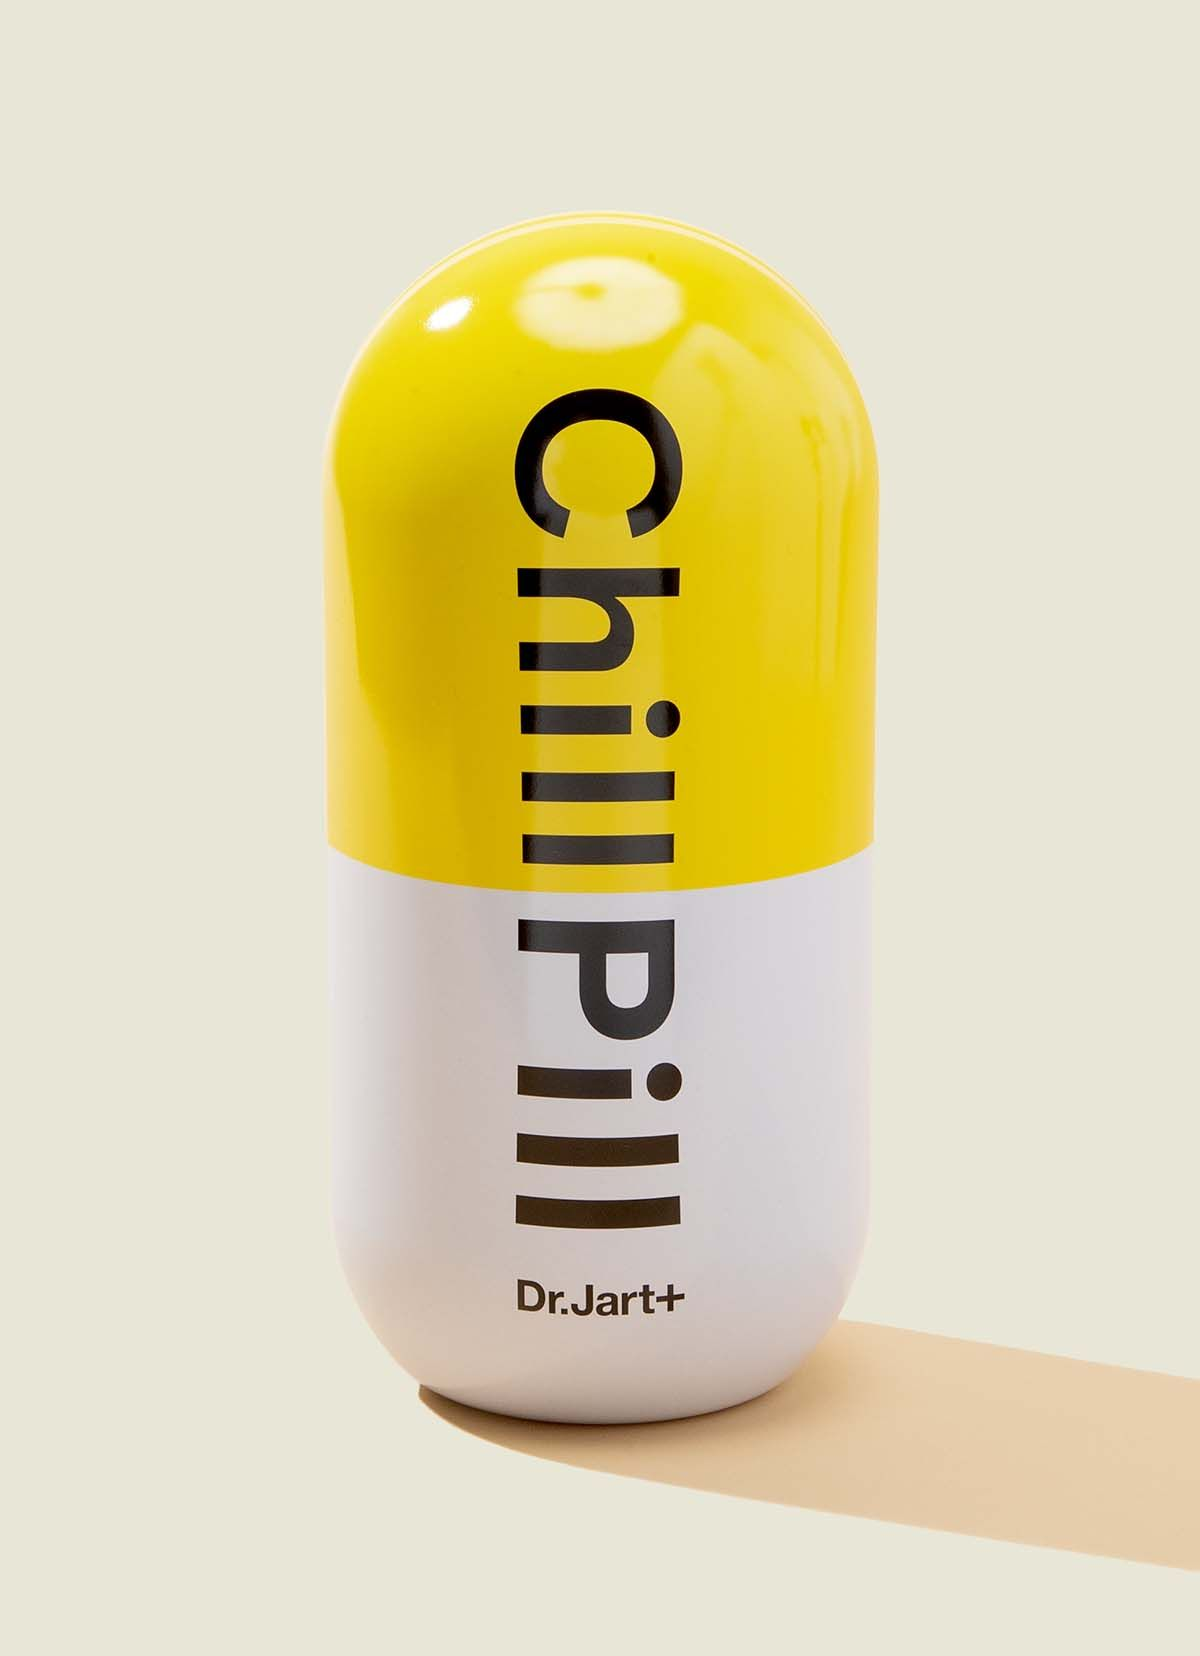 Tin pill-shaped packaging